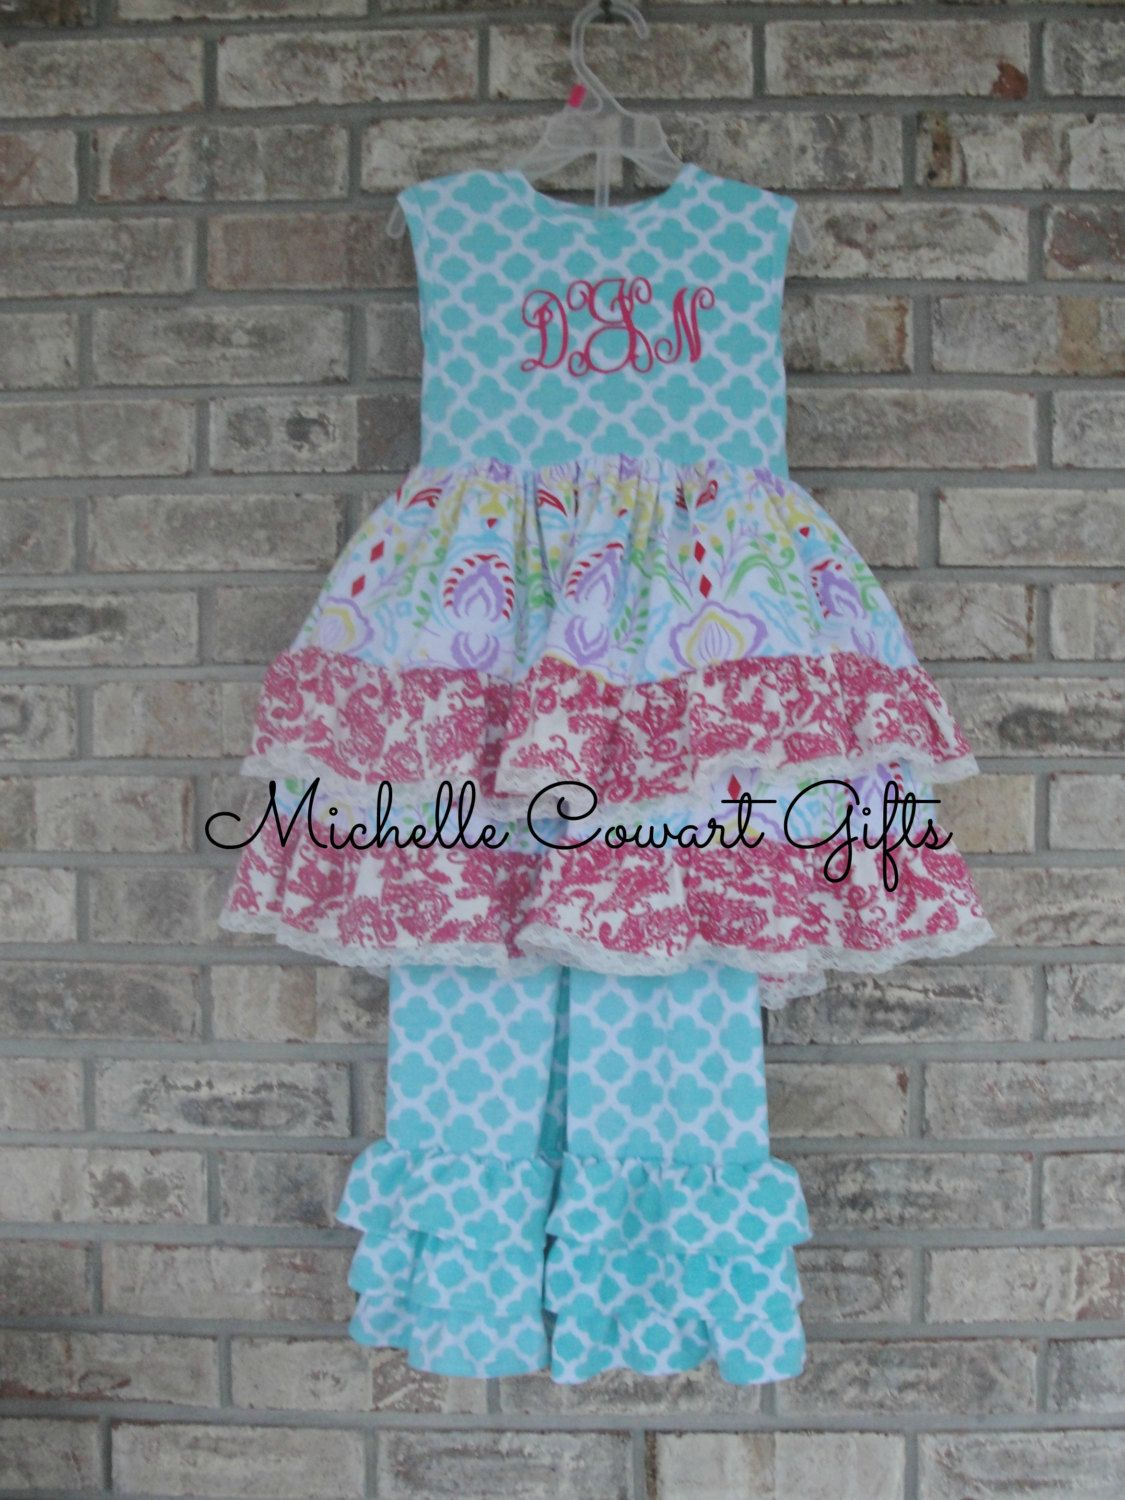 4e298f2c Monogrammed Ruffle Set, Personalized Easter Outfit, Easter Dress, Ruffle  Pant Outfit, Girls, Toddler Outfit, RTS, Girls Floral Dress by  MichelleCowartGifts ...